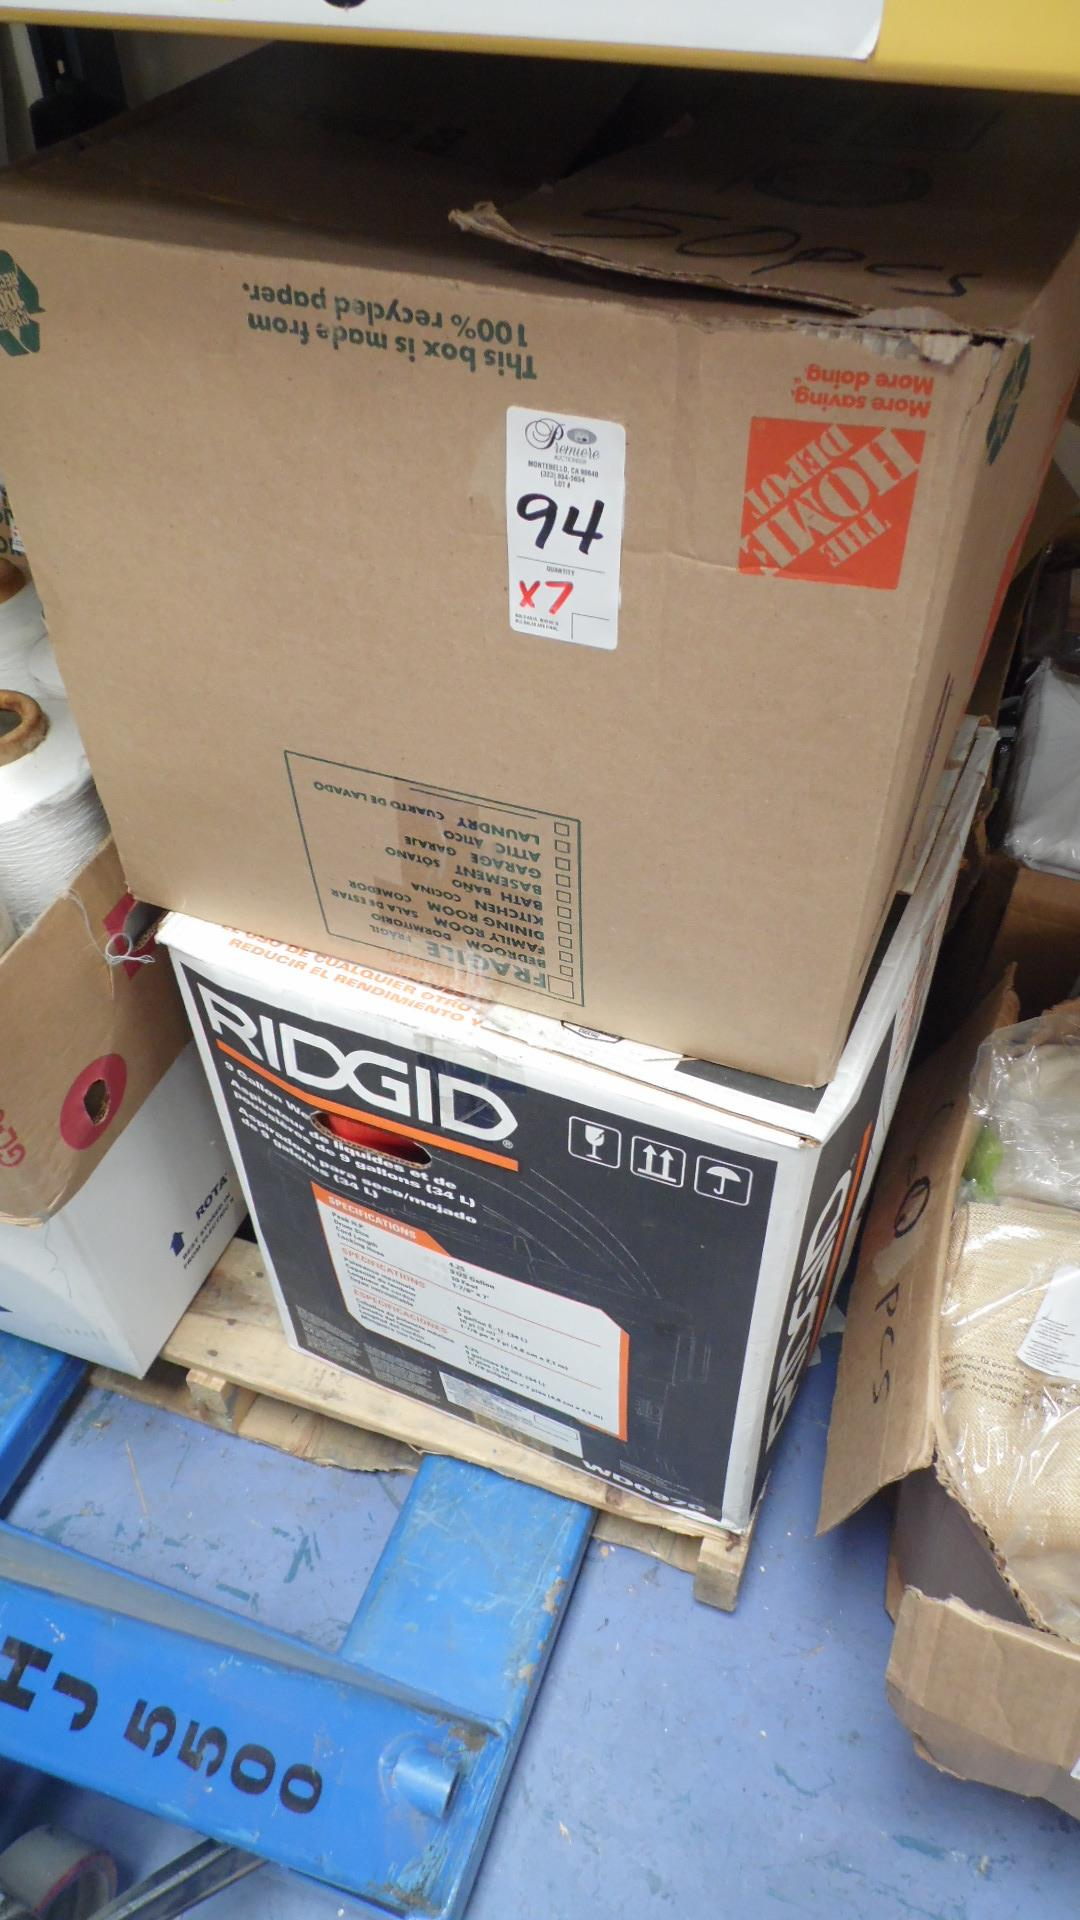 BOXES OF SEWING SPOOLS OF THREAD